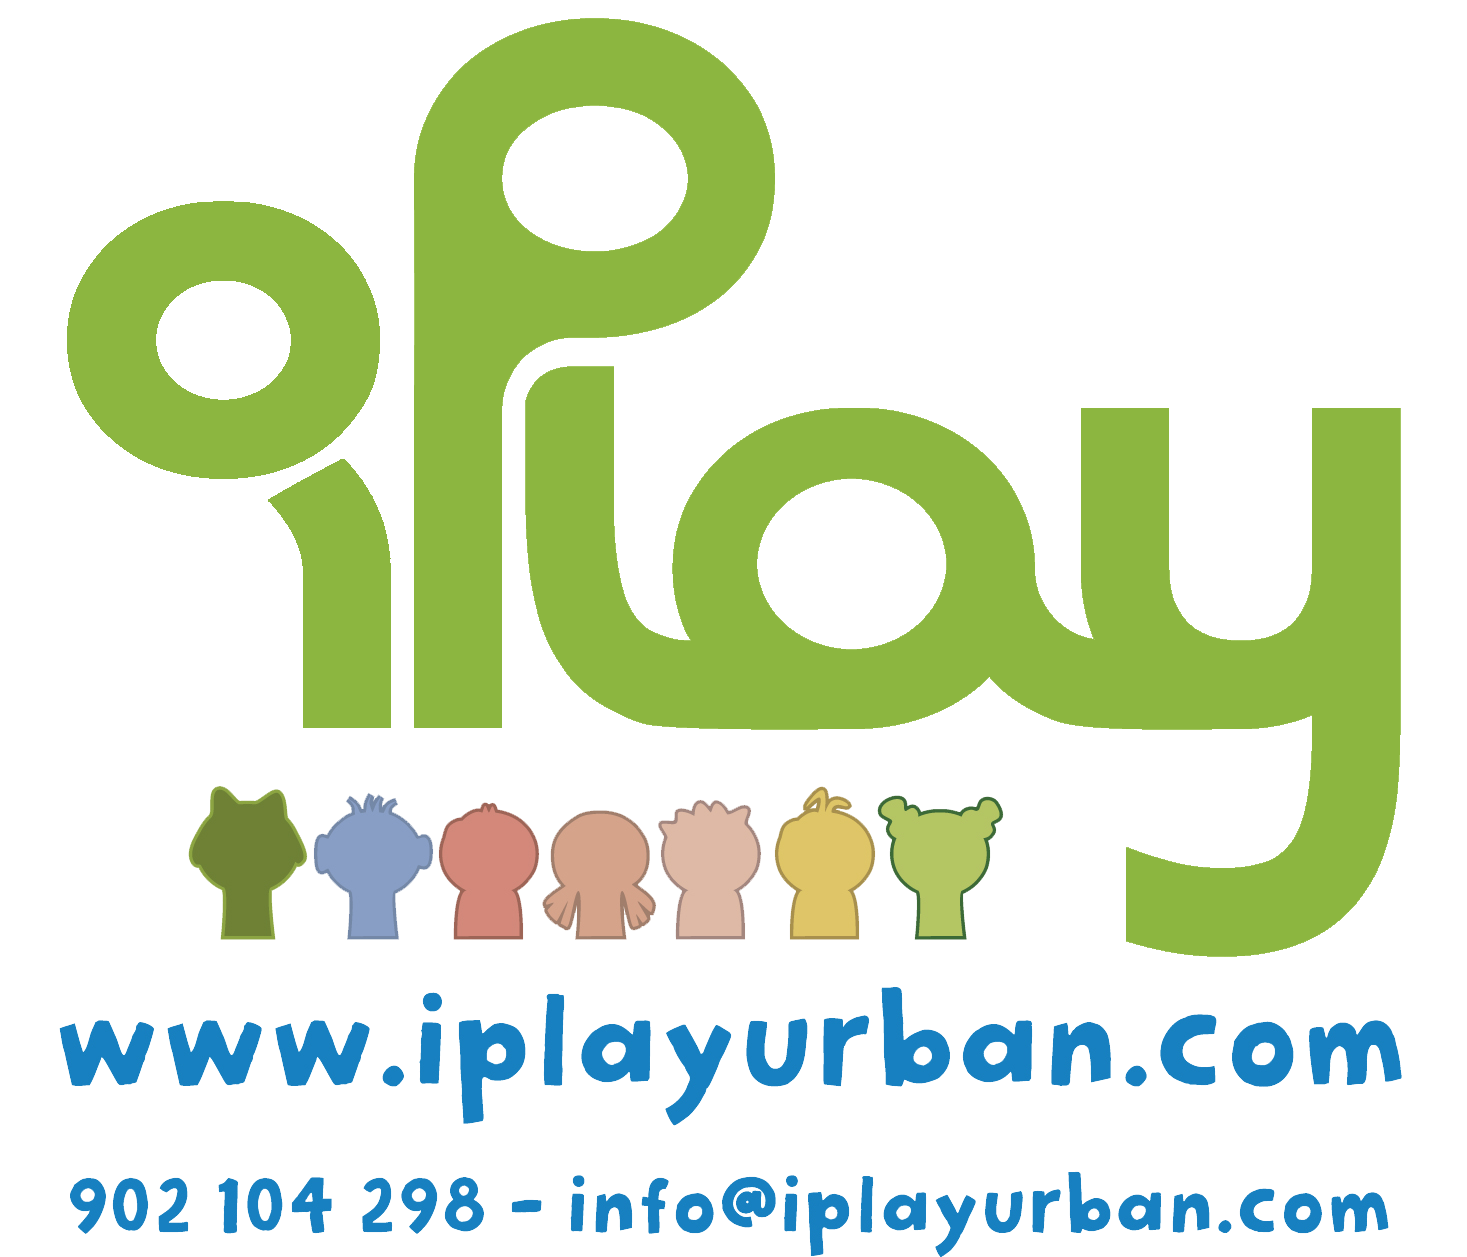 IPLAY URBAN DESIGN, S.L.